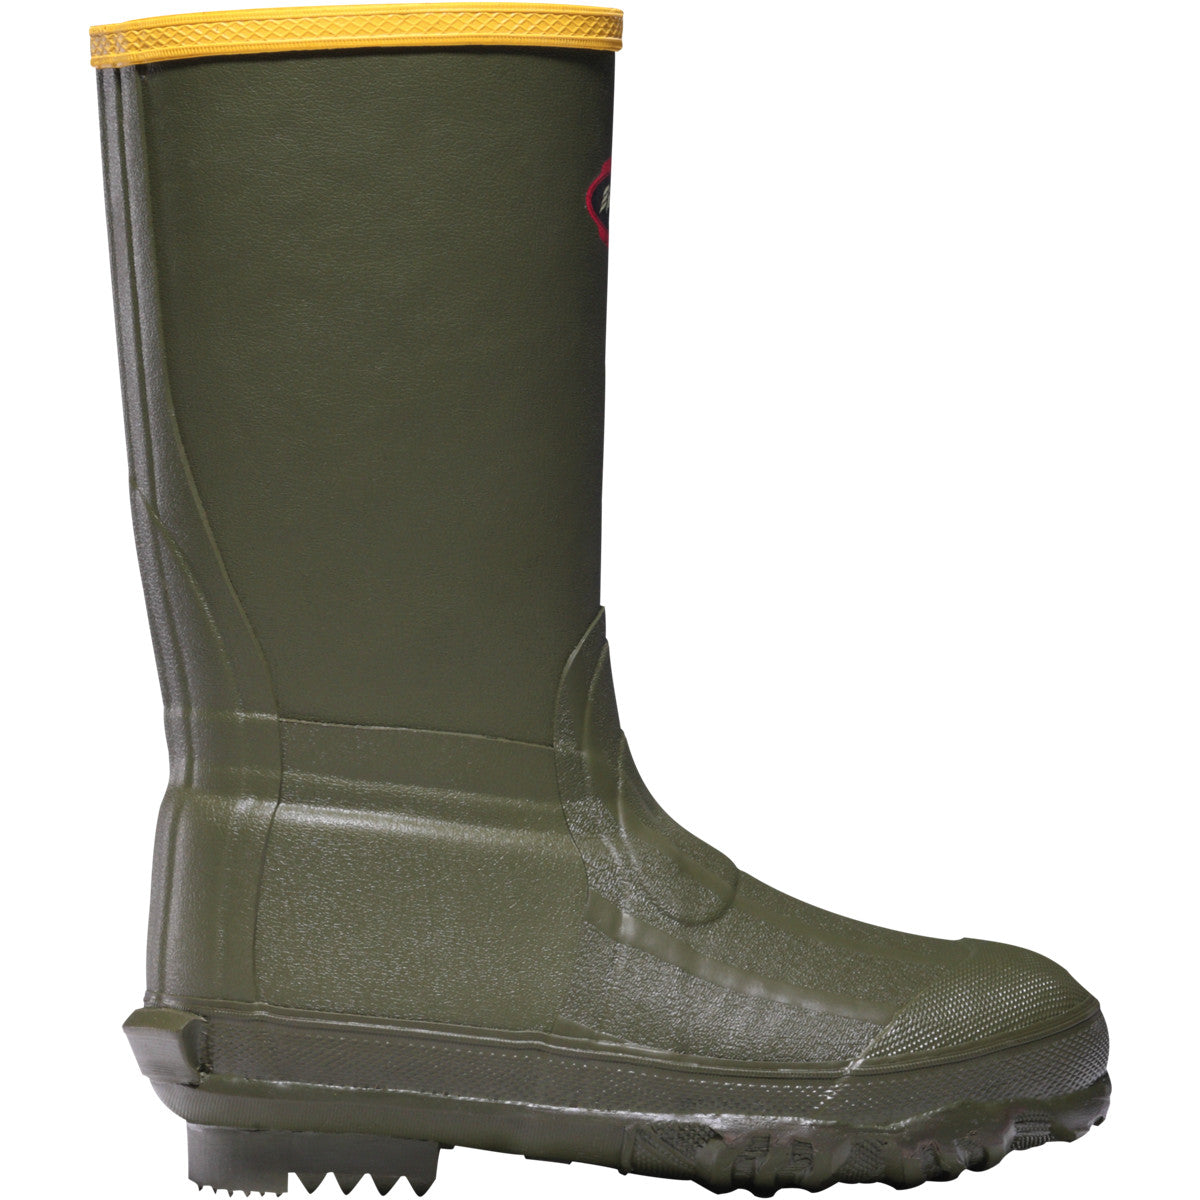 Lacrosse Boy s Lil Burly Boots -Olive Drab- – HerbPhilipson s 0619d8ac175a